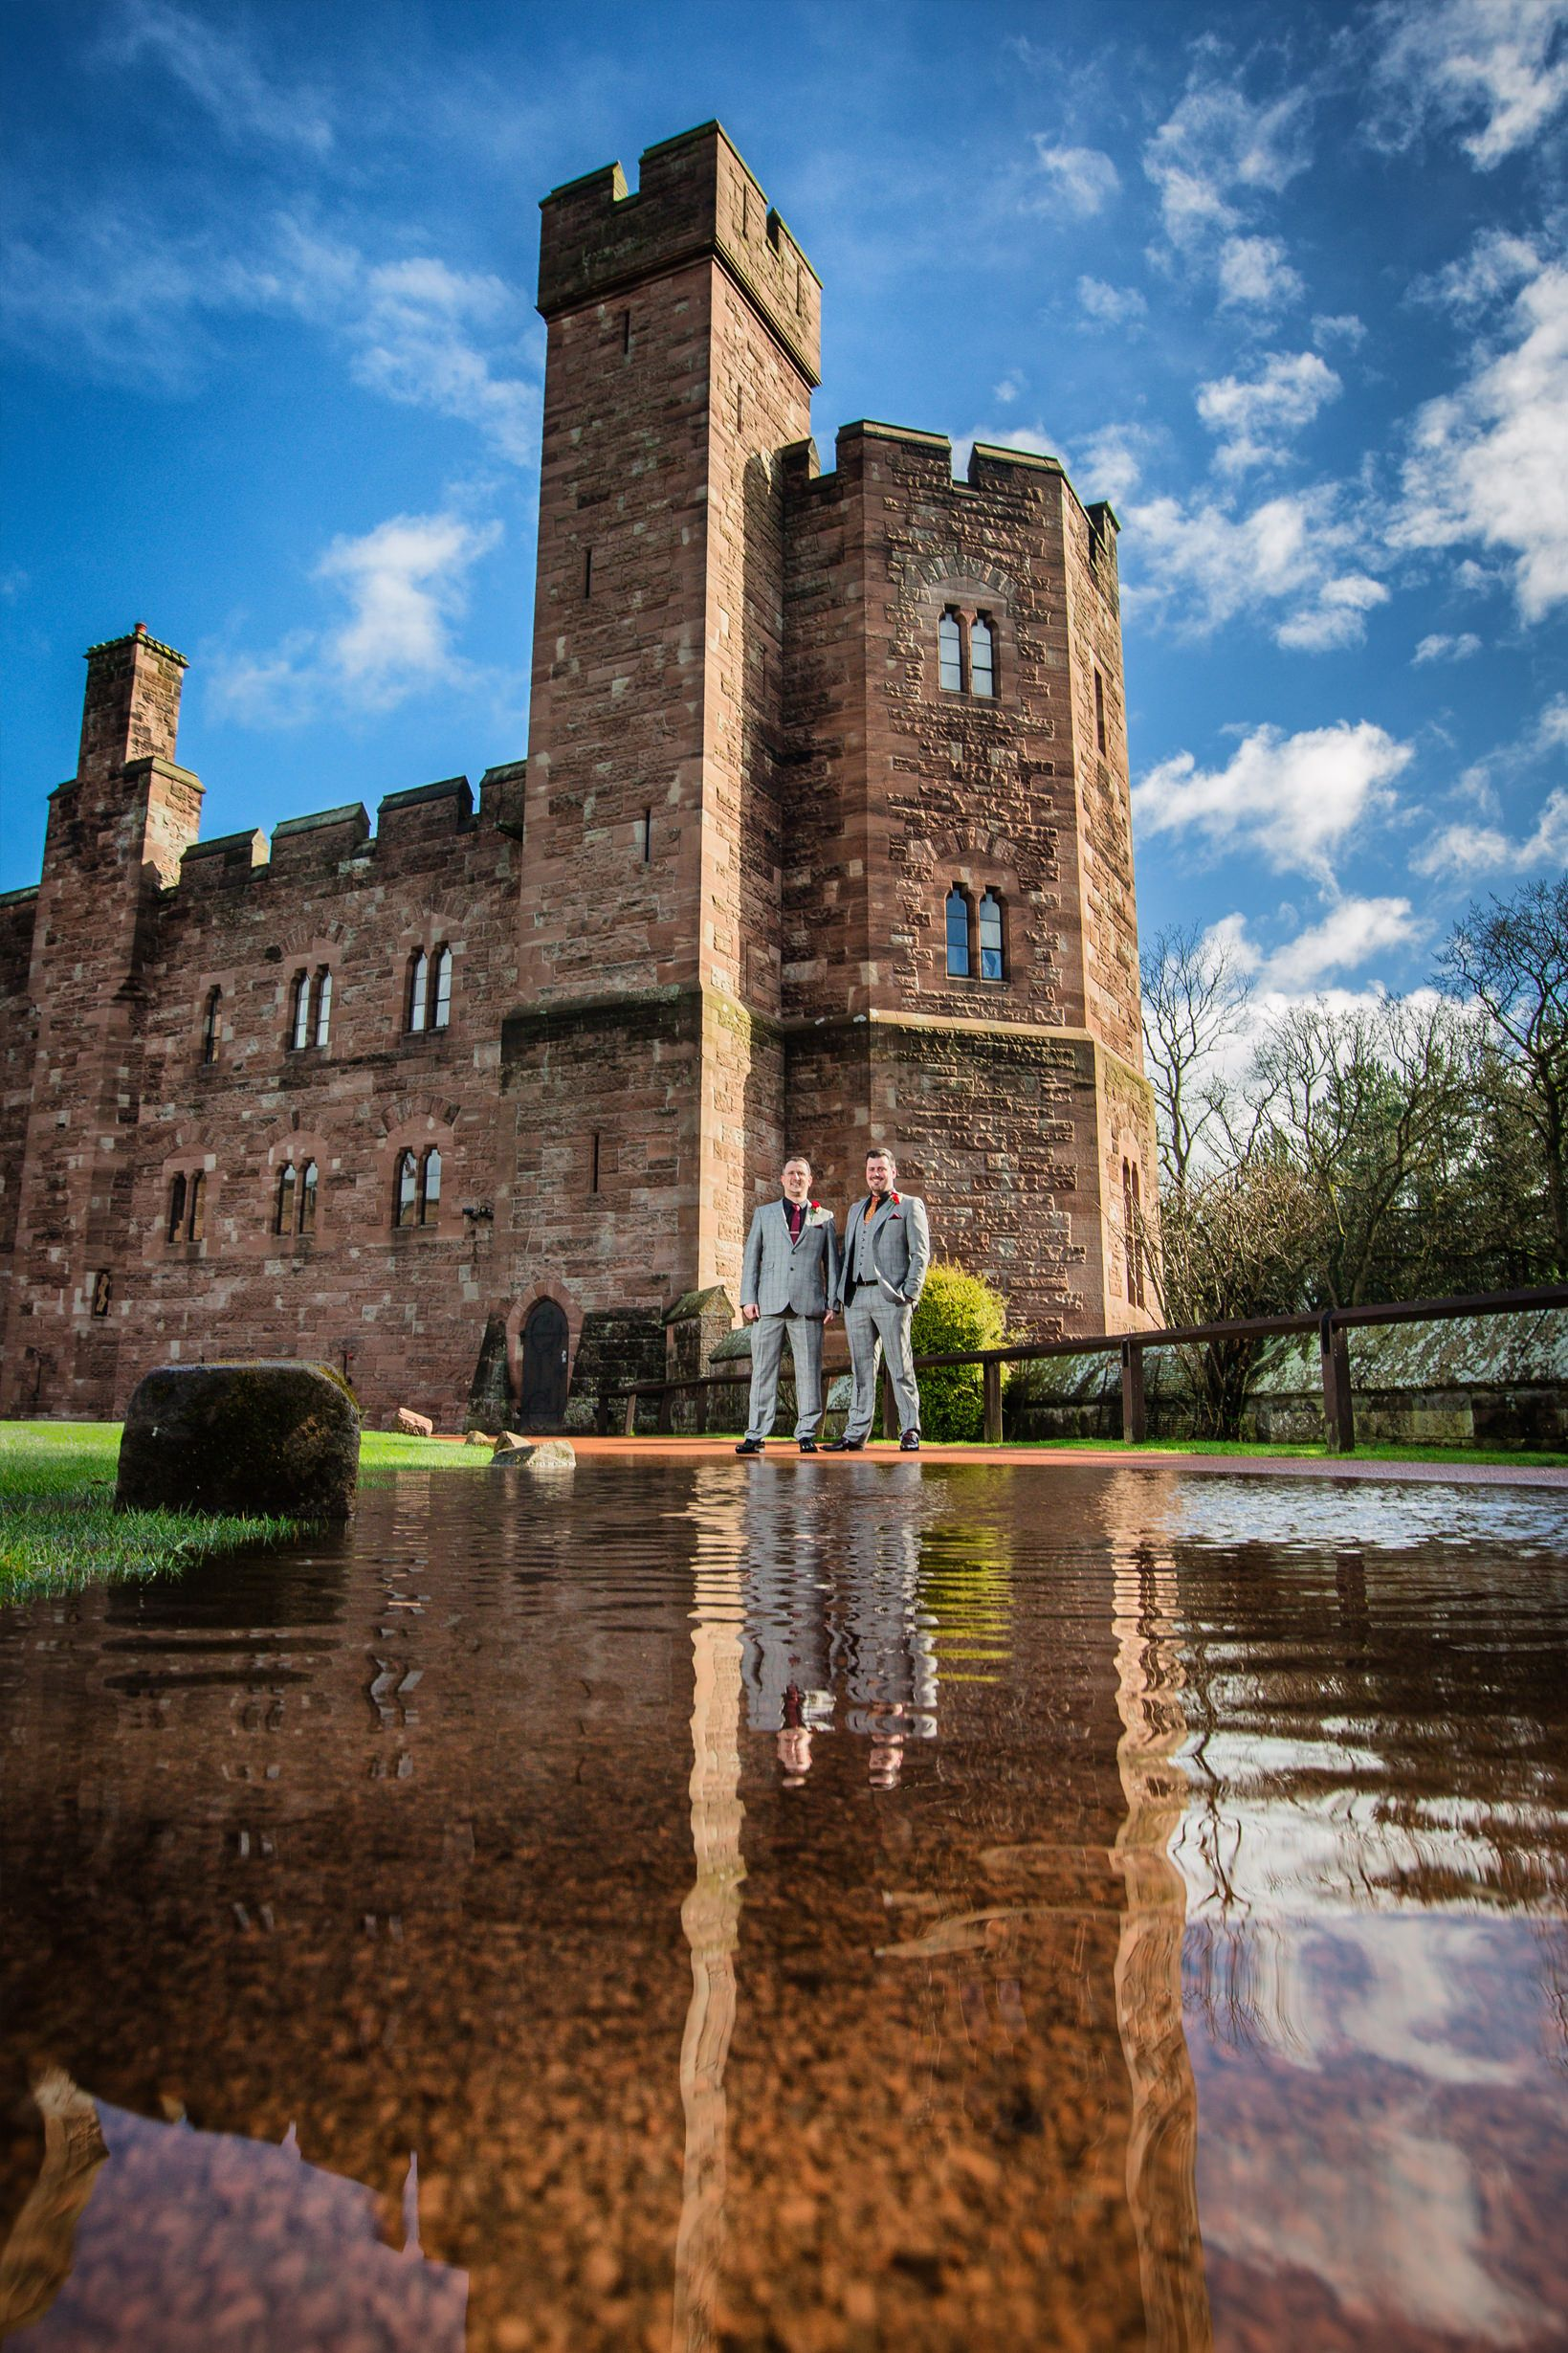 Groom and best man stand reflected in a large rain puddle outside Peckforton Castle in Summer